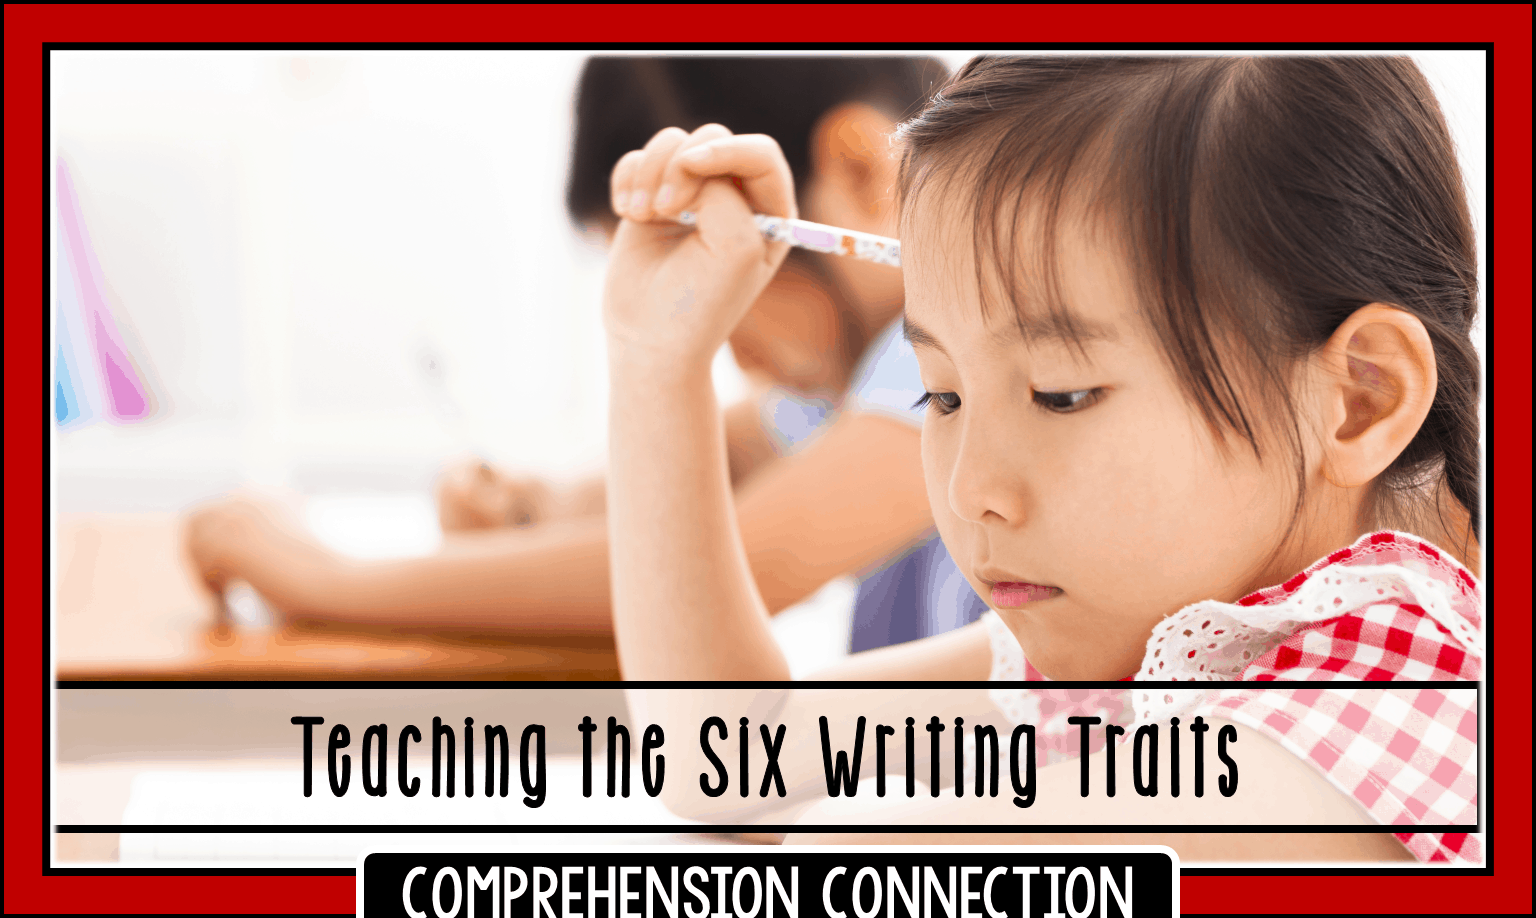 Writing instruction using the Six Writing Traits builds consistency. This post focuses on using writing traits in the primary grades.